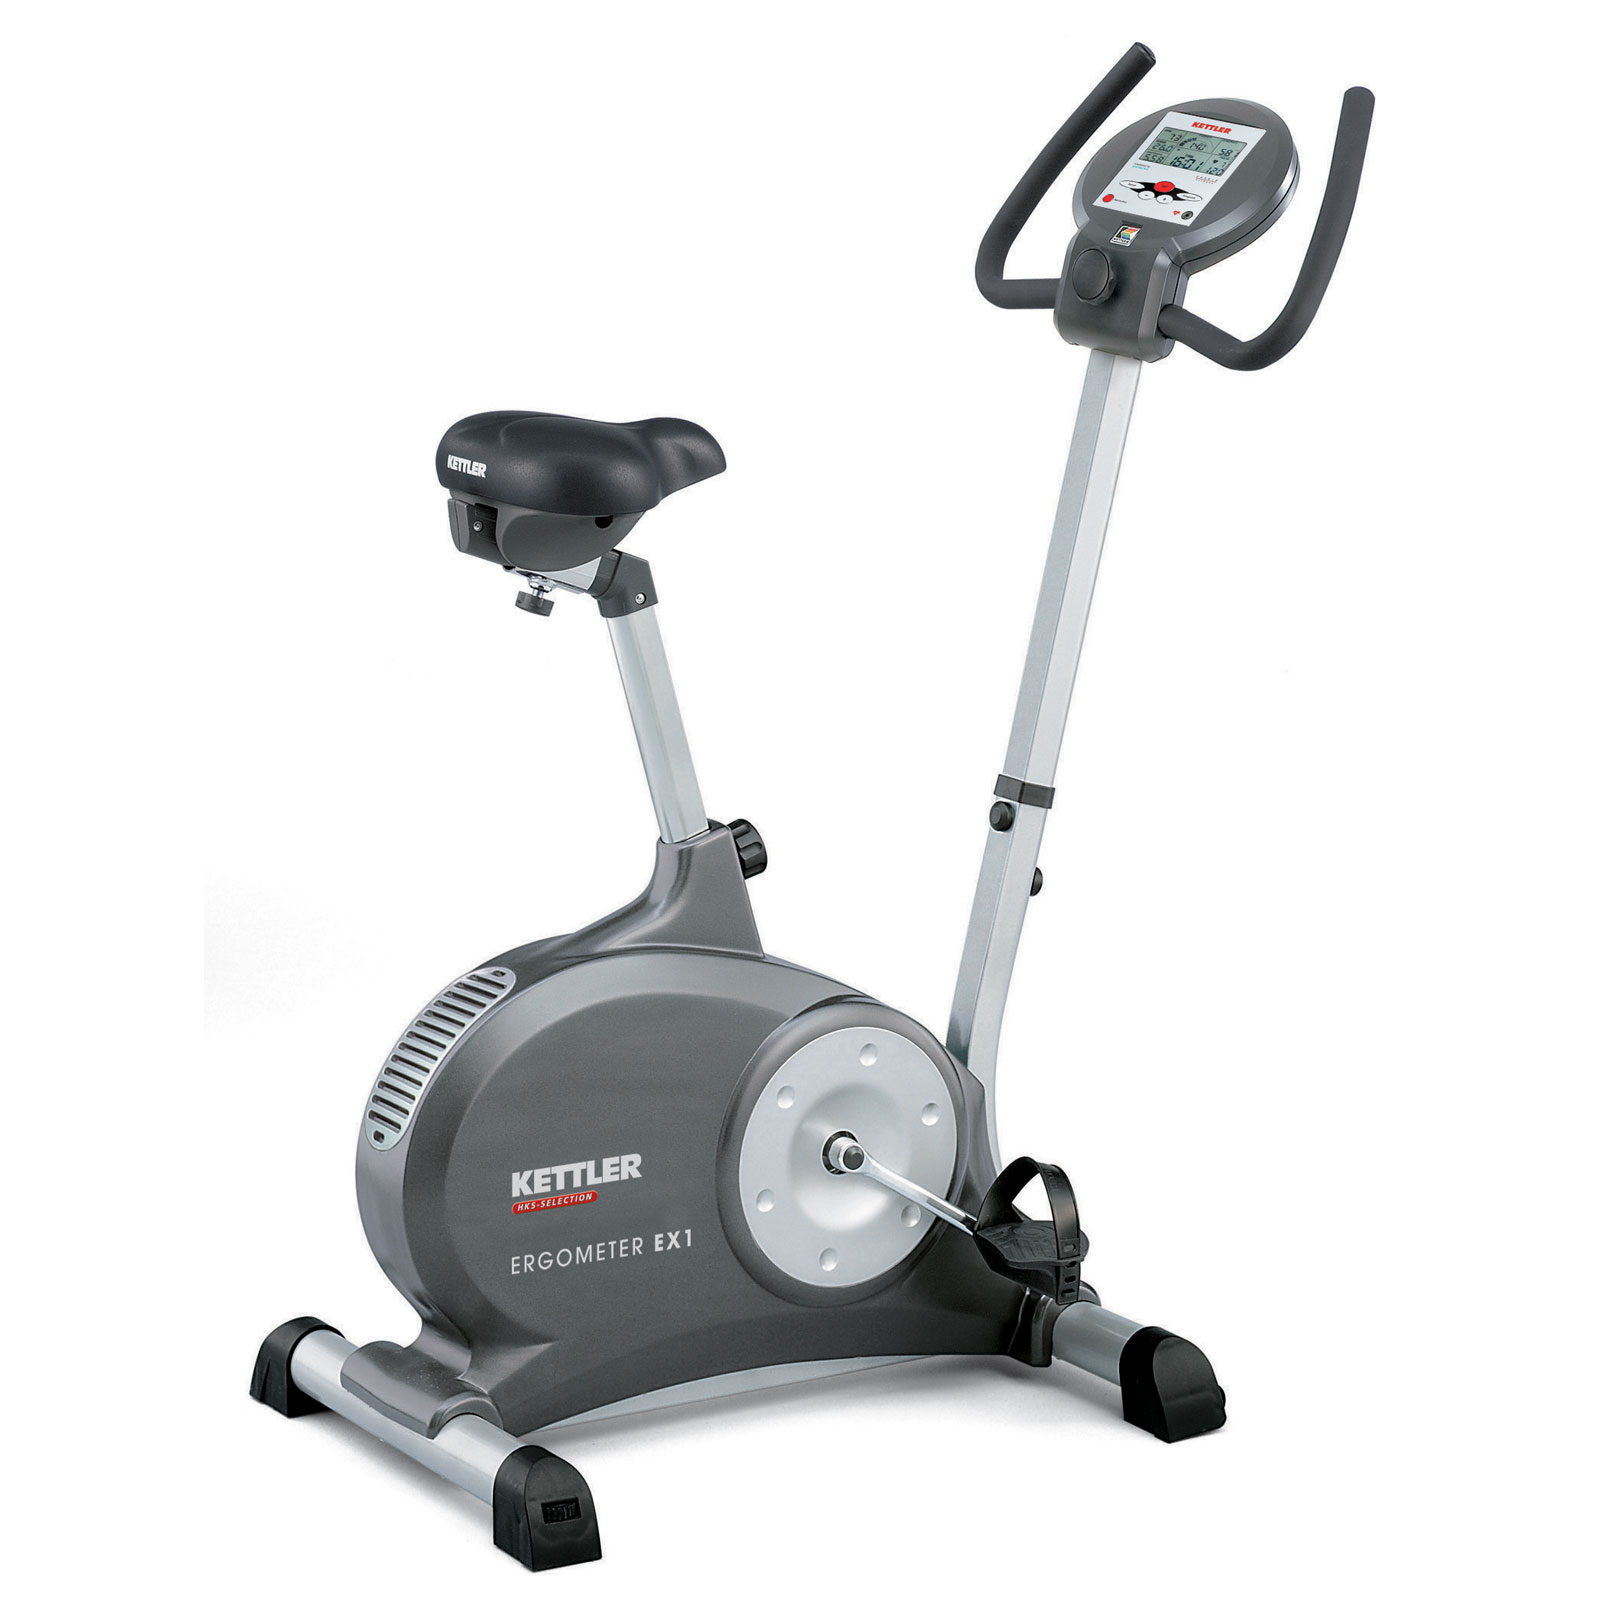 Kettler Garden Master Kettler Ex 1 Upright Exercise Bike At Hayneedle